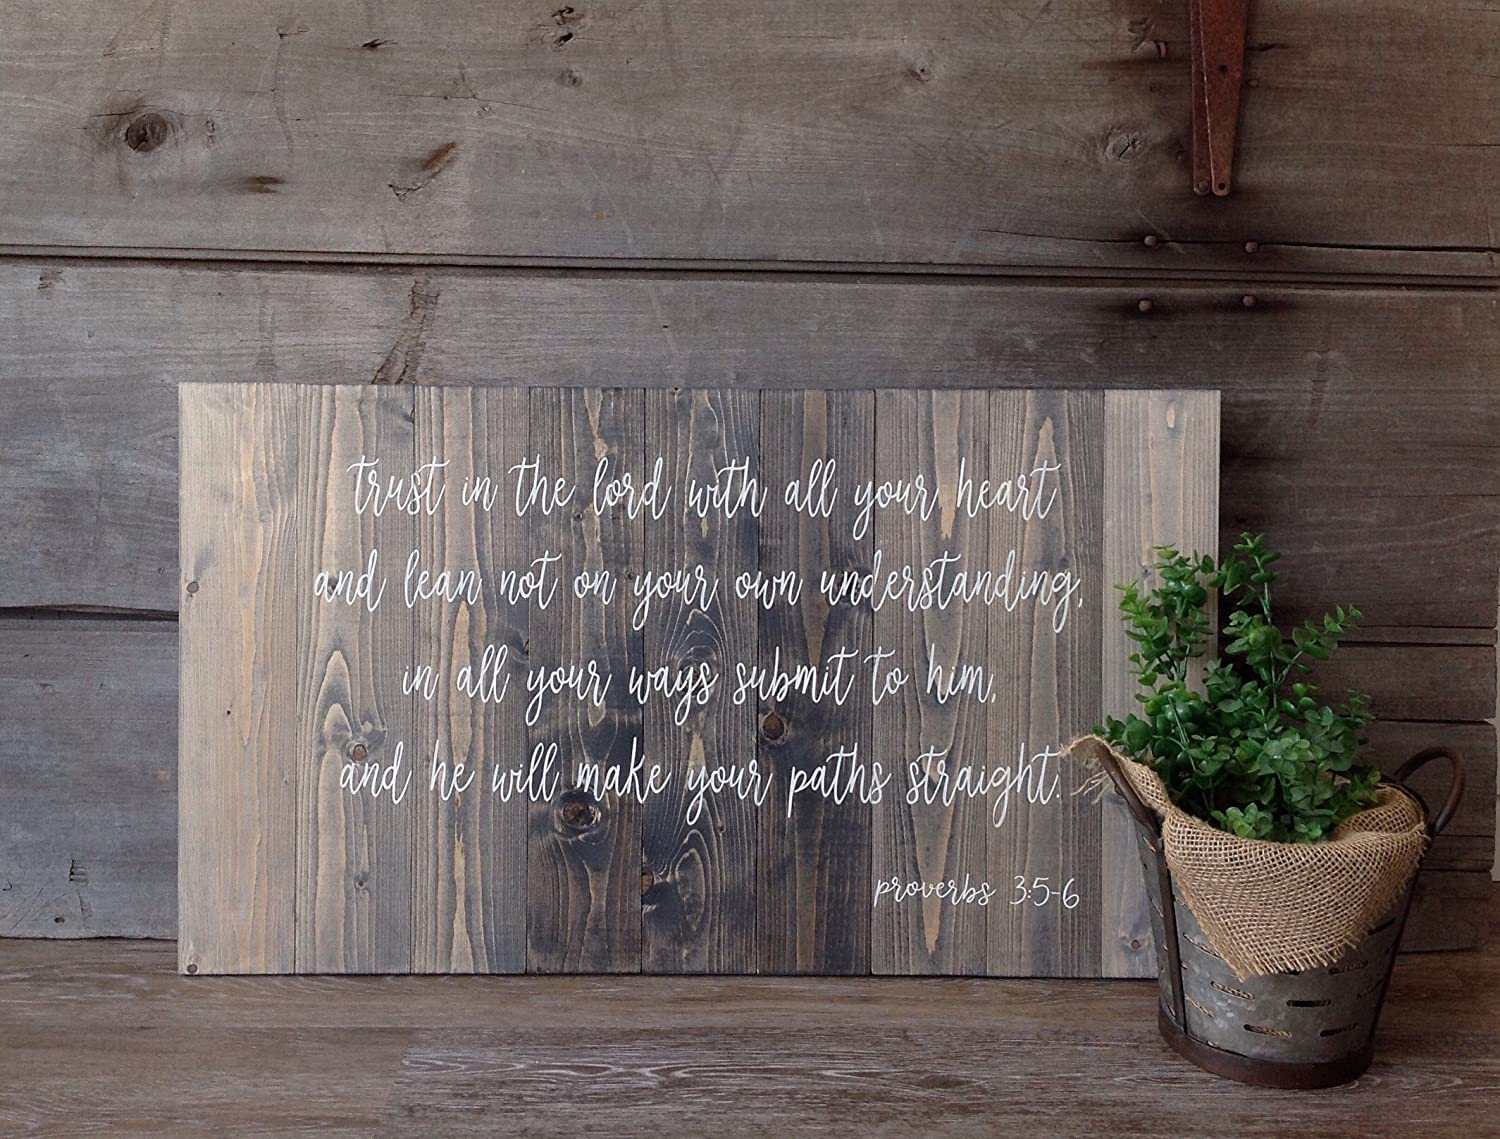 43LenaJon Trust in The Lord with All Your Heart and Lean not on Your own Understanding in All Ways Sign,Hanging Wooden Label for Garden Decor